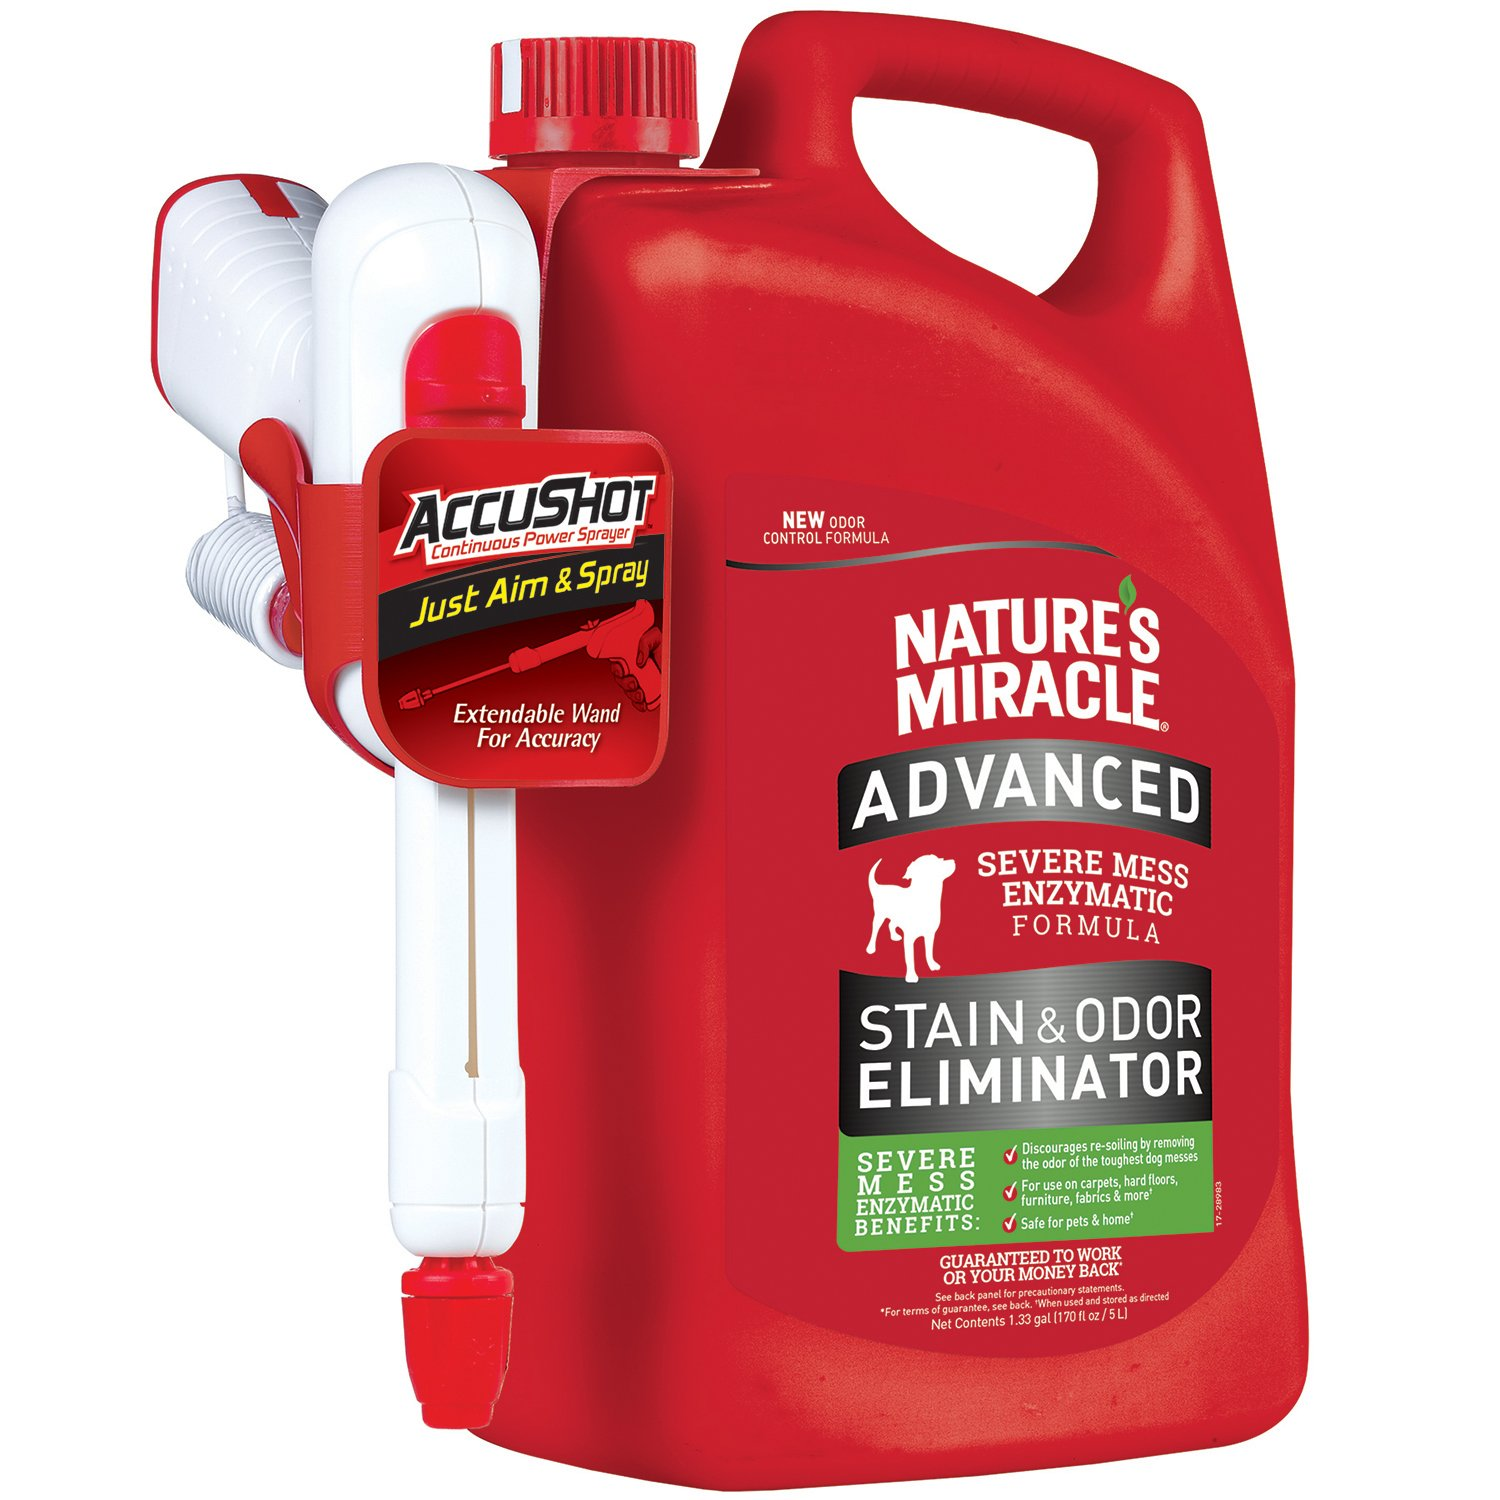 Nature's Miracle Advanced Stain and Odor Eliminator,  170oz